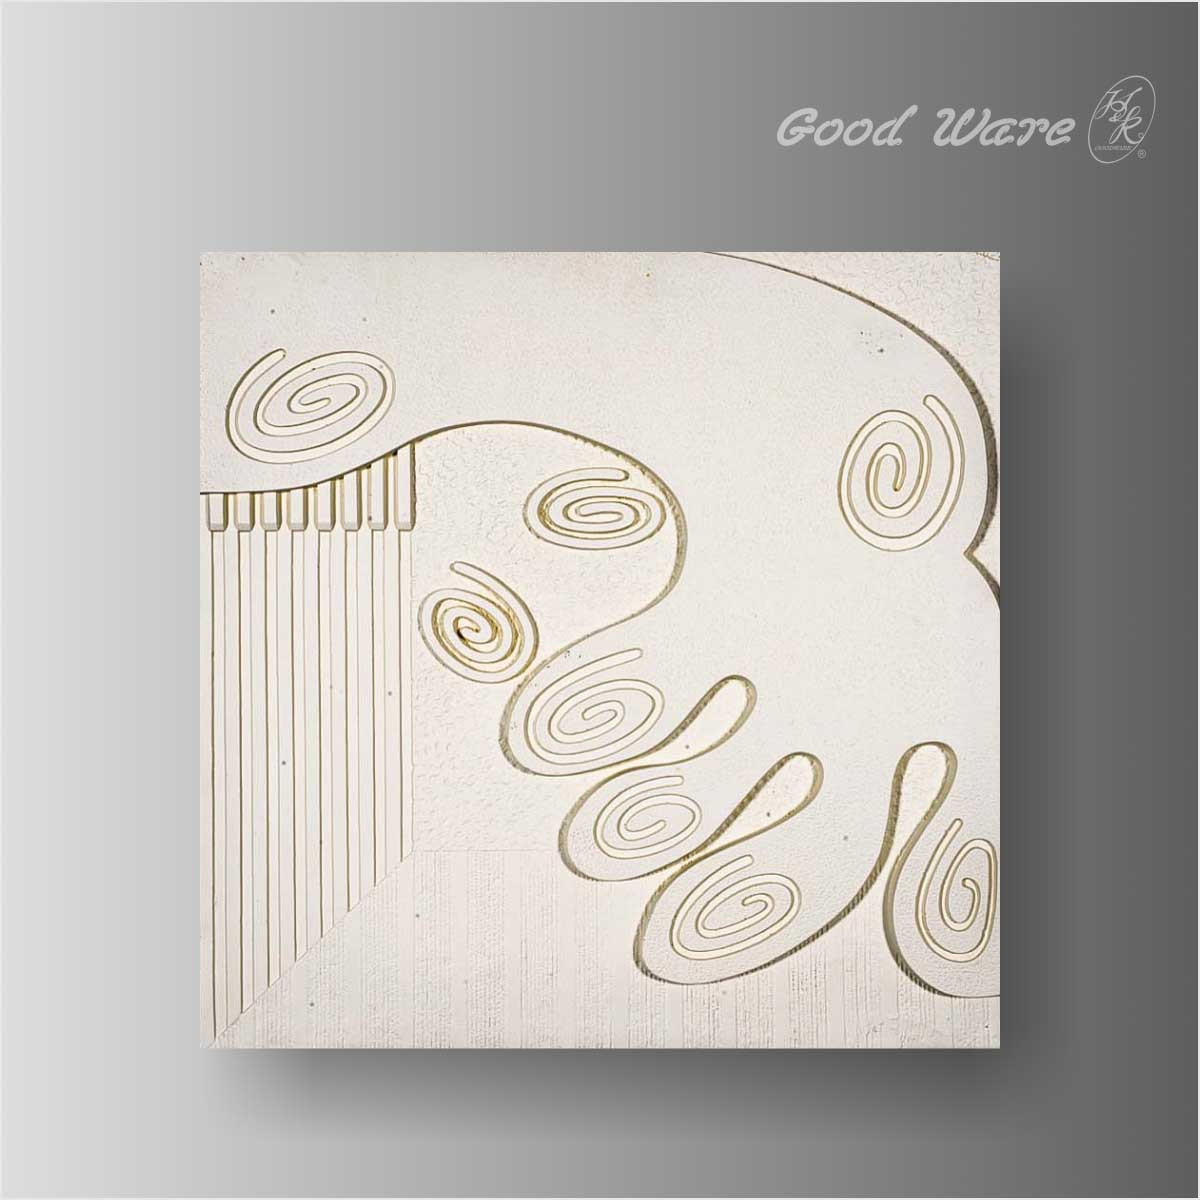 Polyurethane relief wall sculpture panel